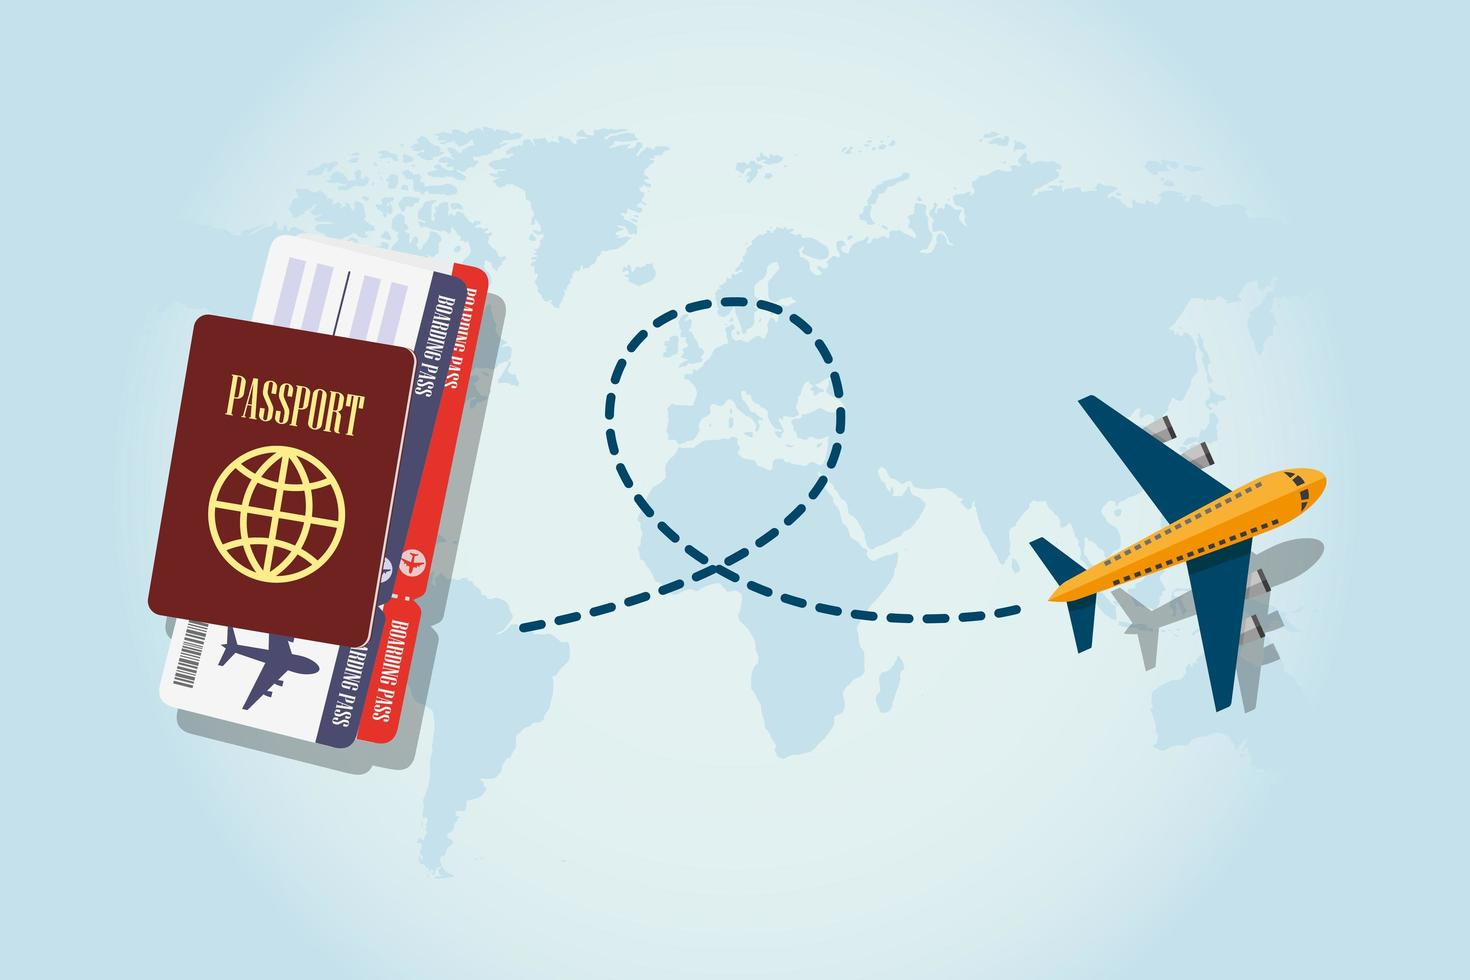 Passport, boarding pass and airplane flying vector